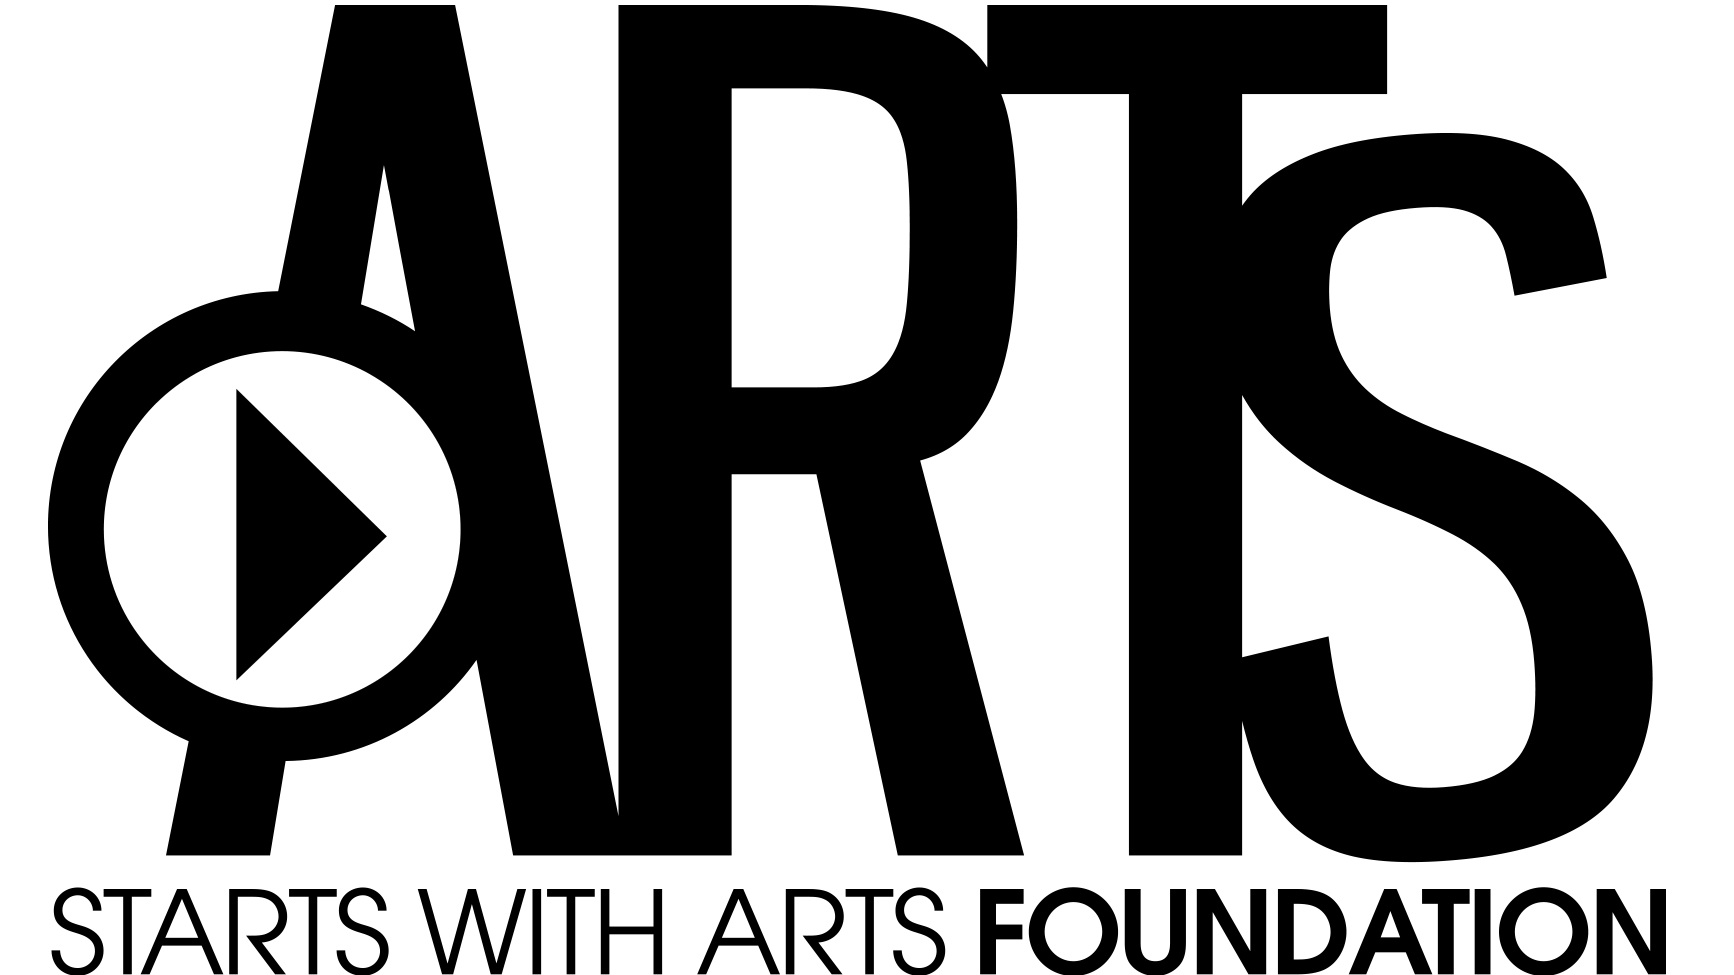 STARTS WITH ARTS_LOGO_BLK.png